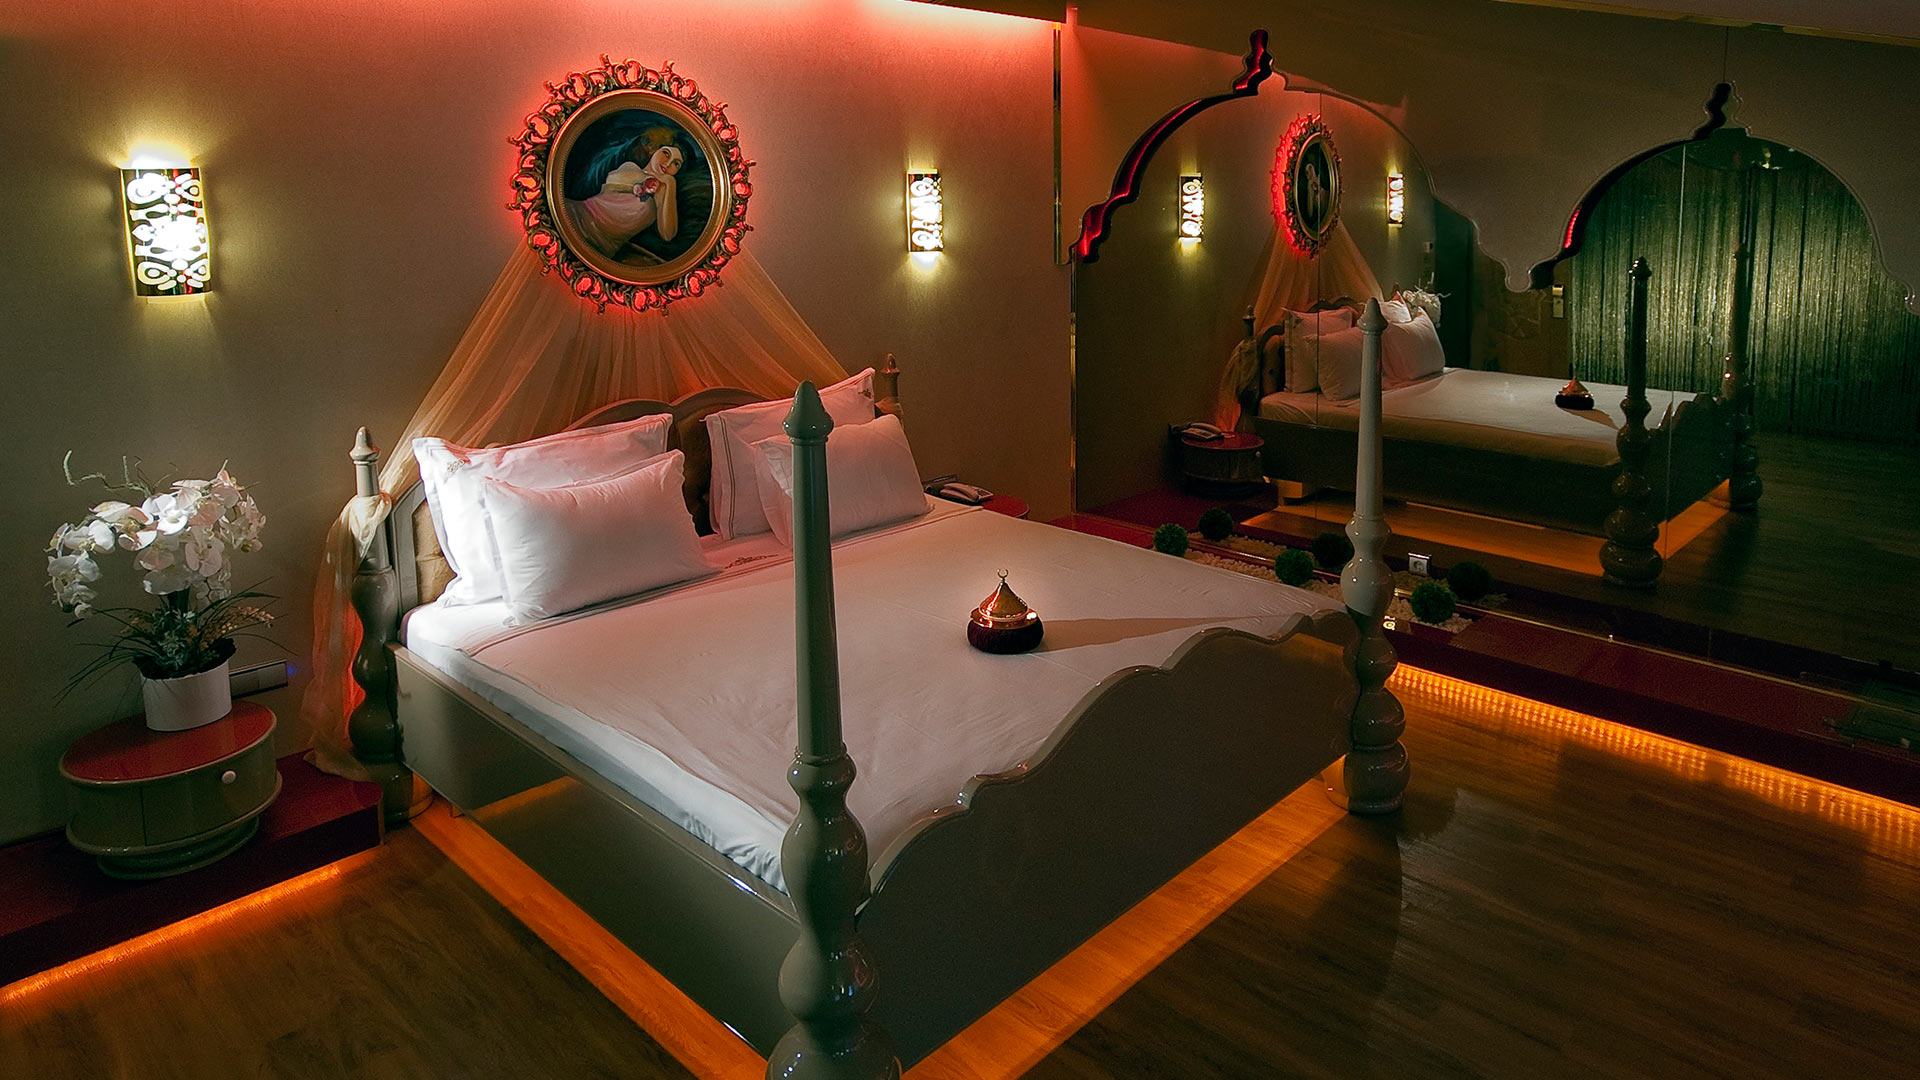 Hotel_Room_King_Size_Bed